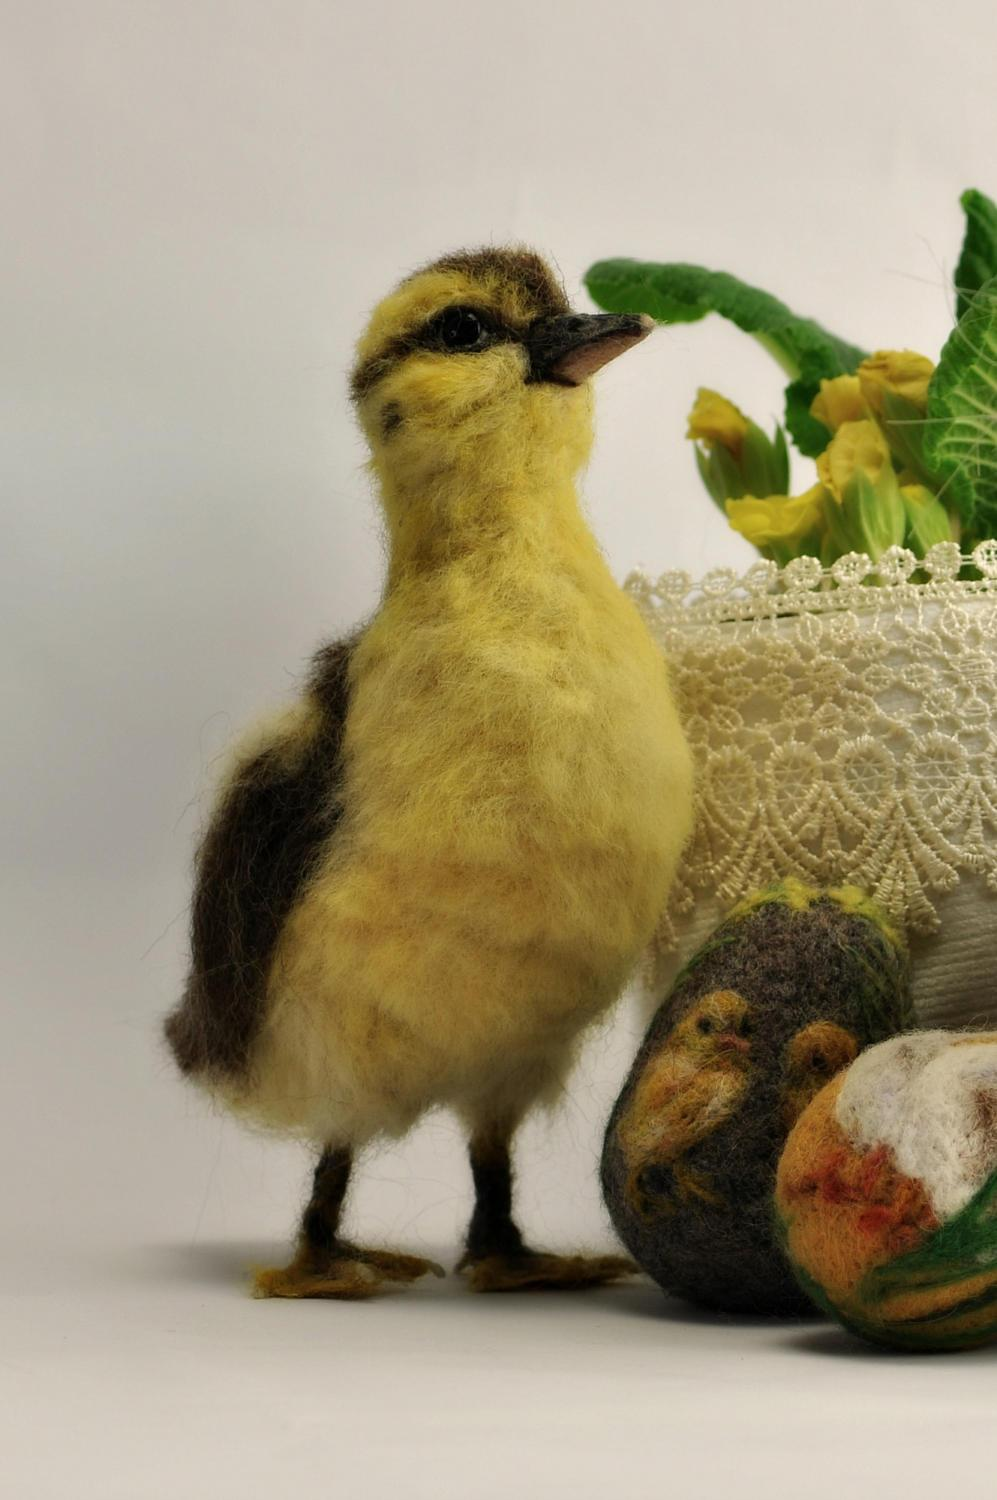 Needle Felted Animal Sculptures In Miniature By Daria Lvovsky 3